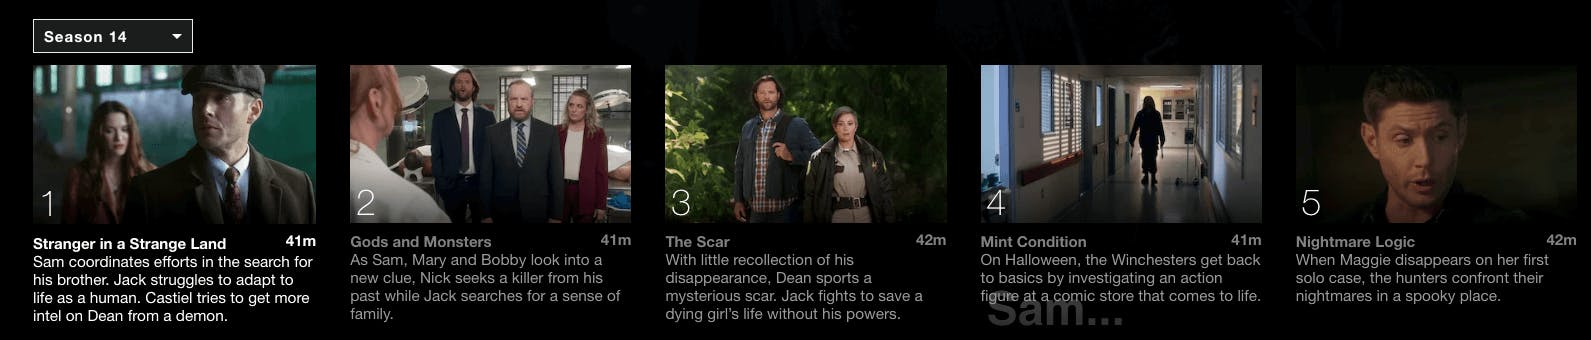 watch supernatural season 15 on Netflix